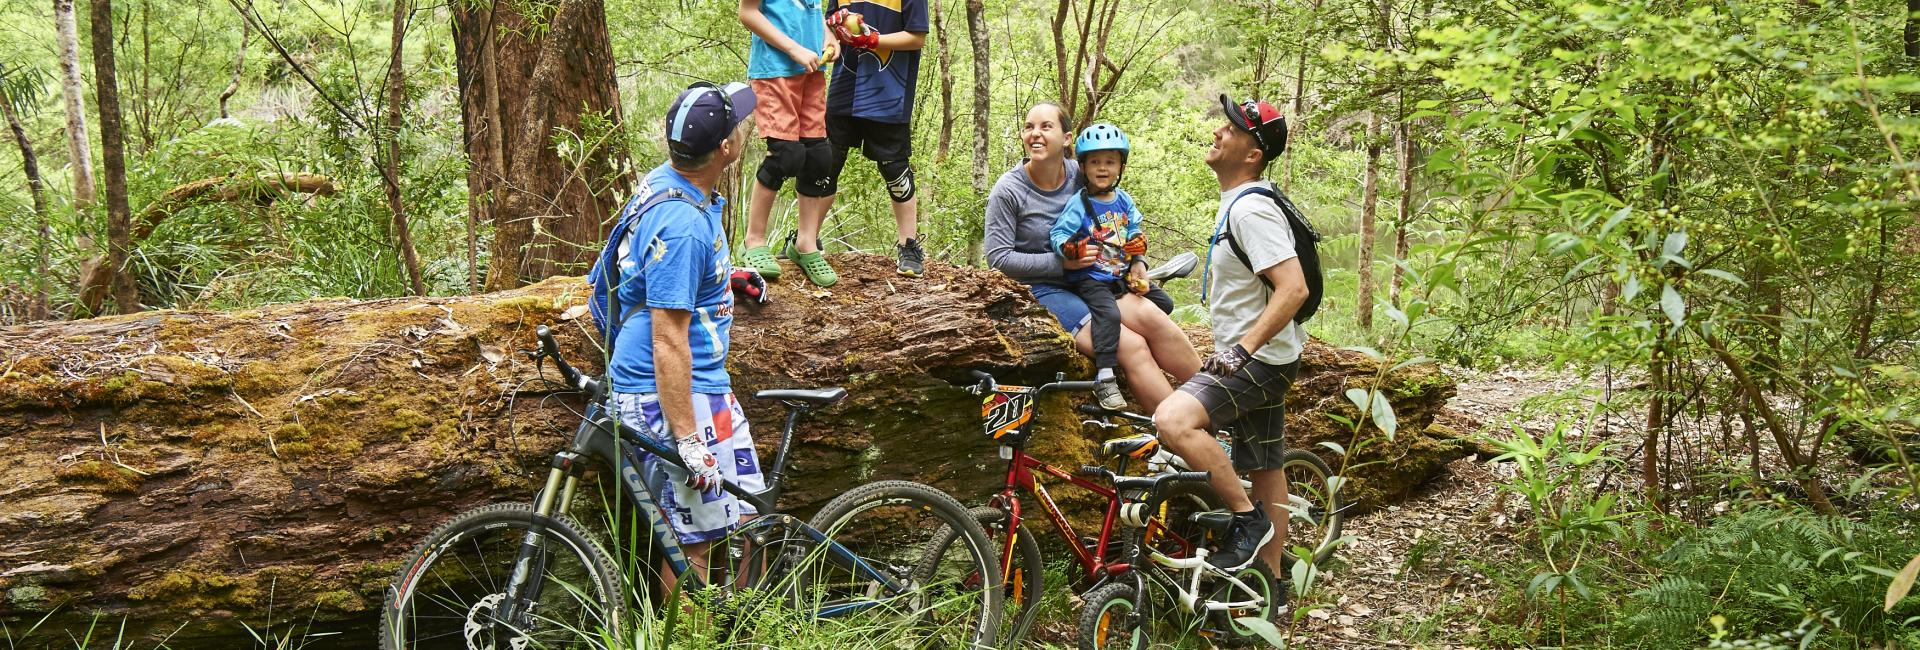 A group of adults and kids rest on a log with mountain bikes